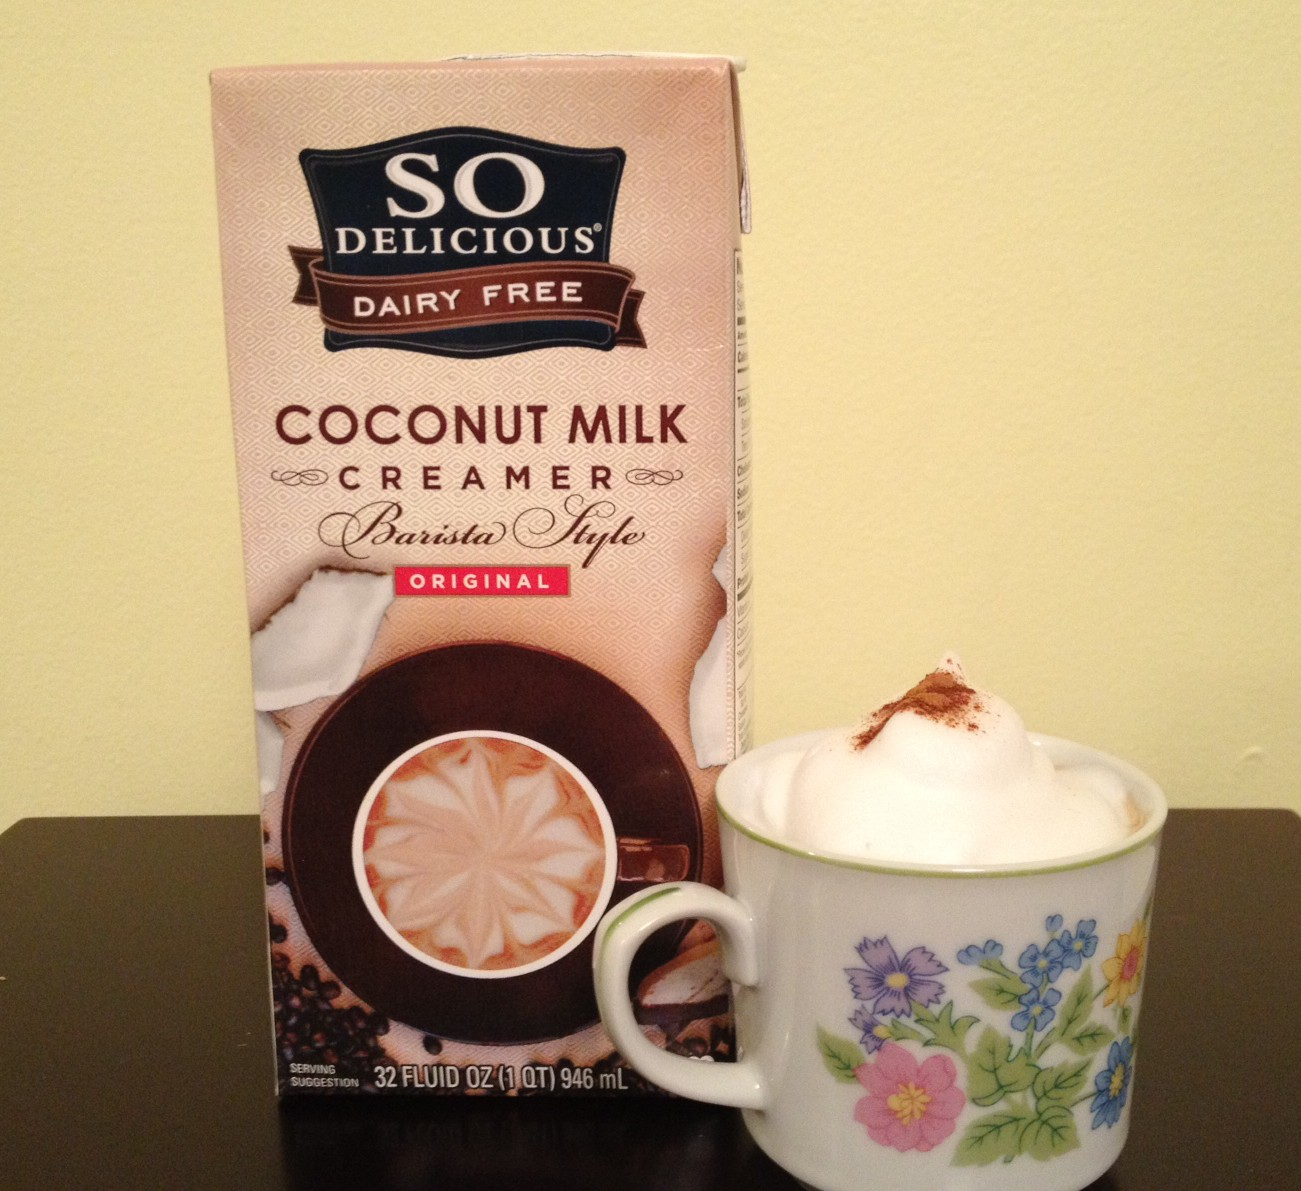 So Delicious Barista Style Coconut Milk Creamer Review